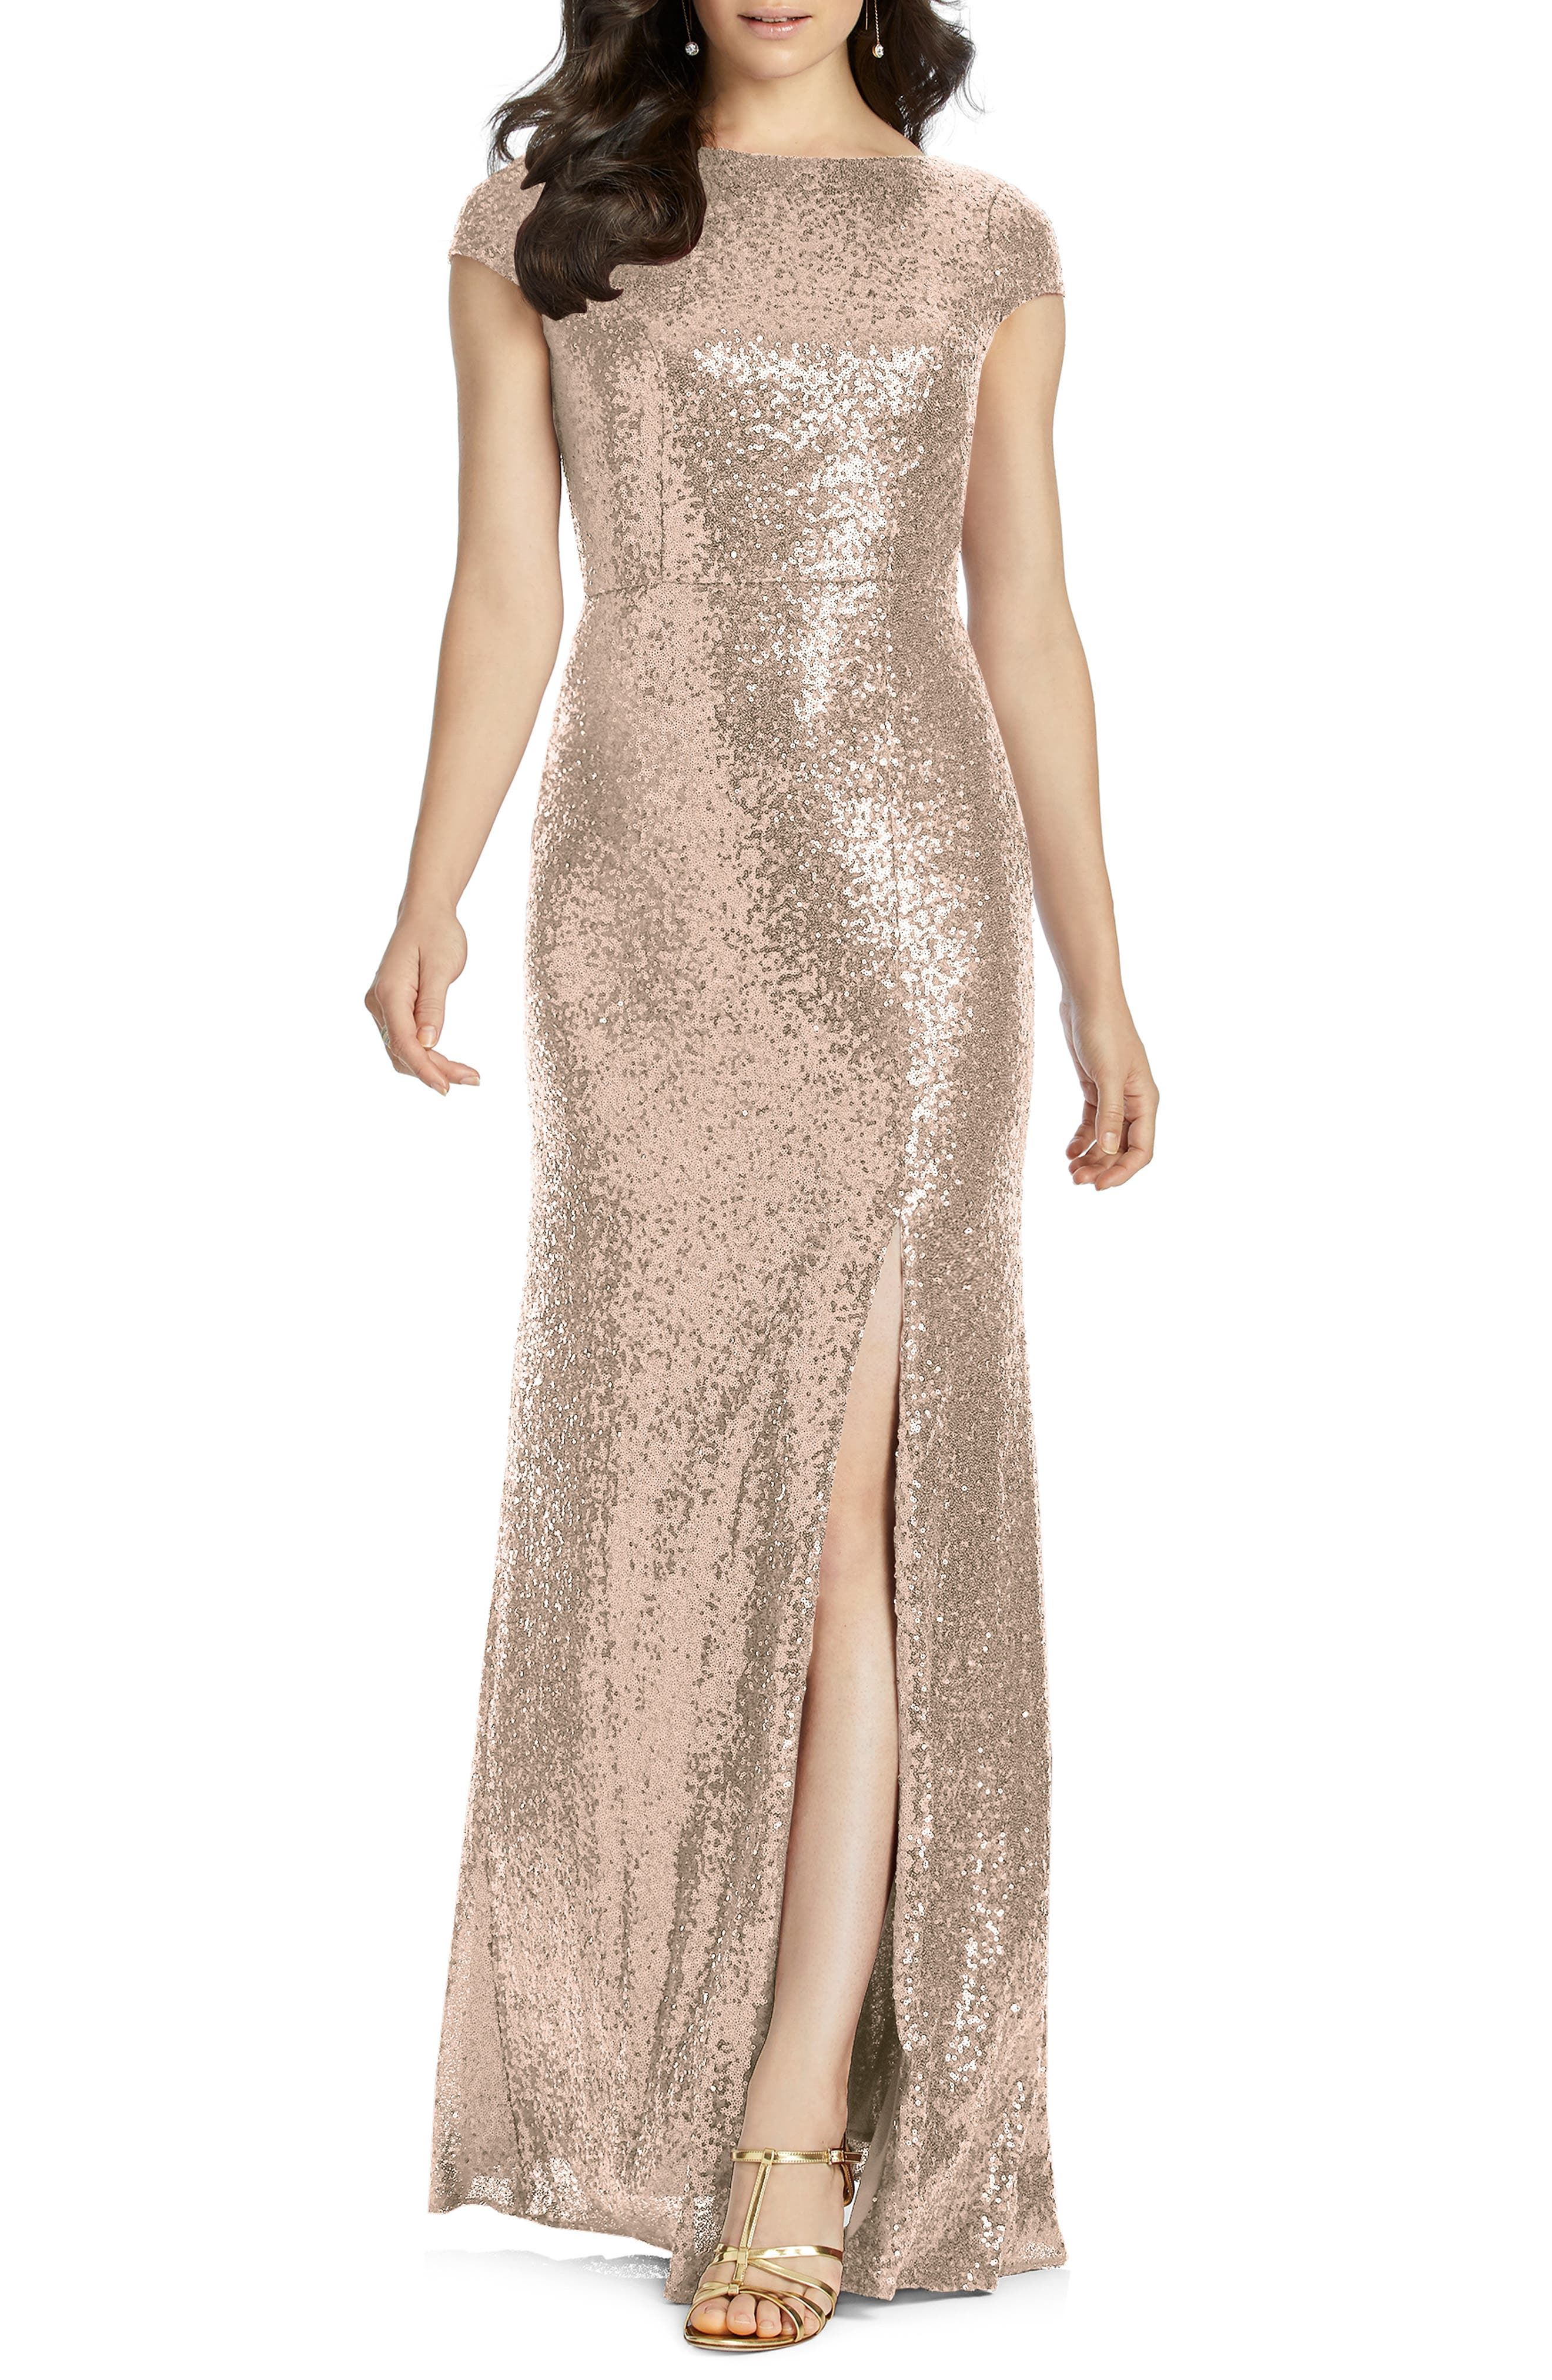 DESSY COLLECTION, Elle Cap Sleeve Sequin Gown, Main thumbnail 1, color, ROSE GOLD